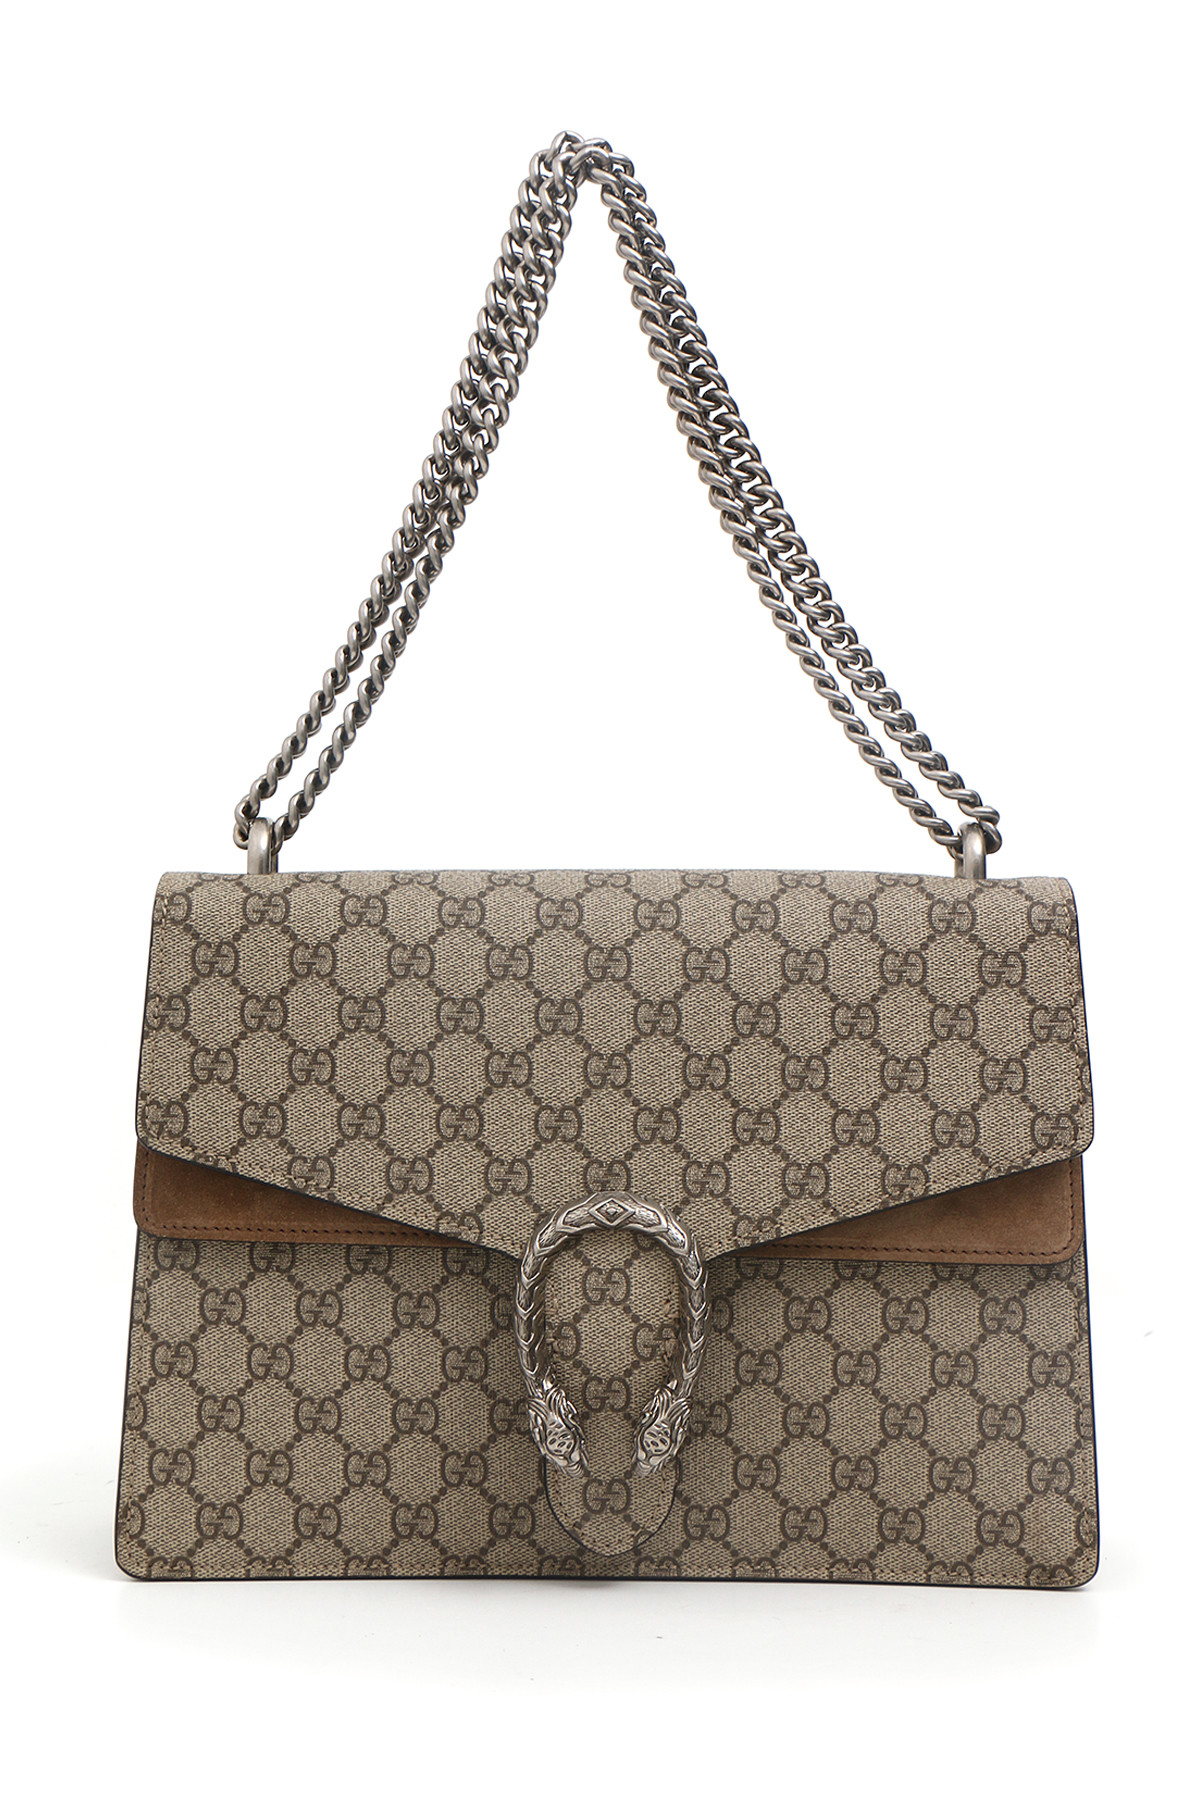 Gucci borse in beige marrone lyst for Borse gucci outlet online